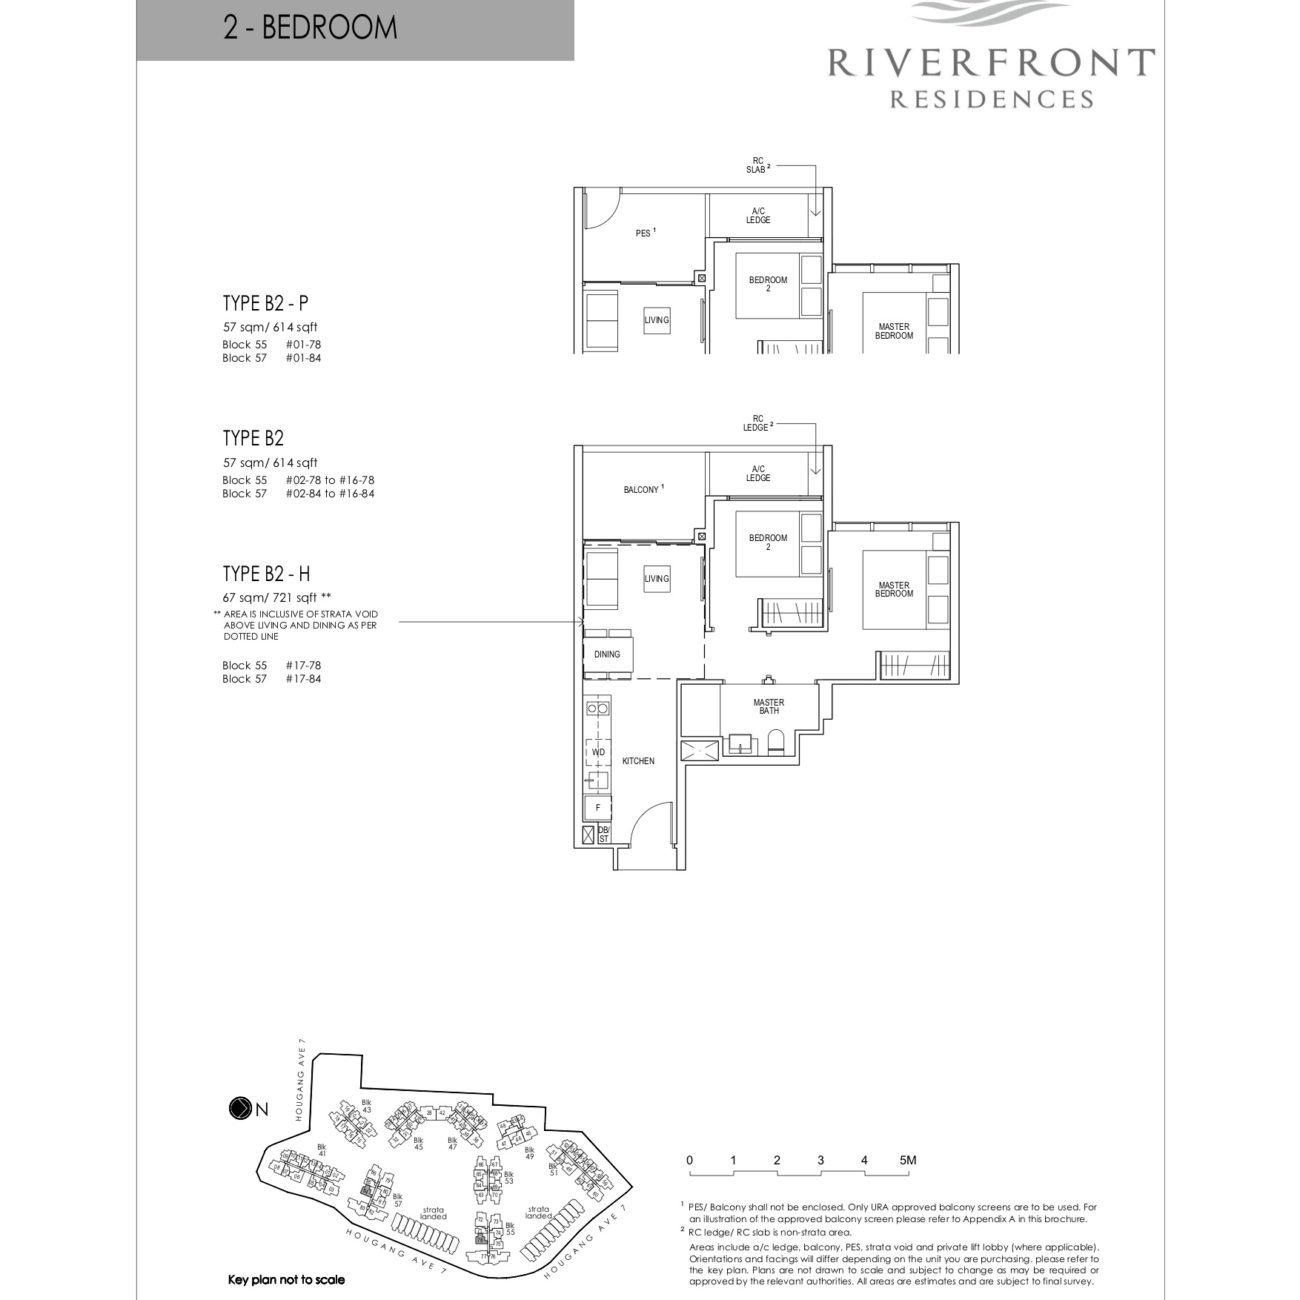 riverfront-residences-floorplan-2bedroom-b2